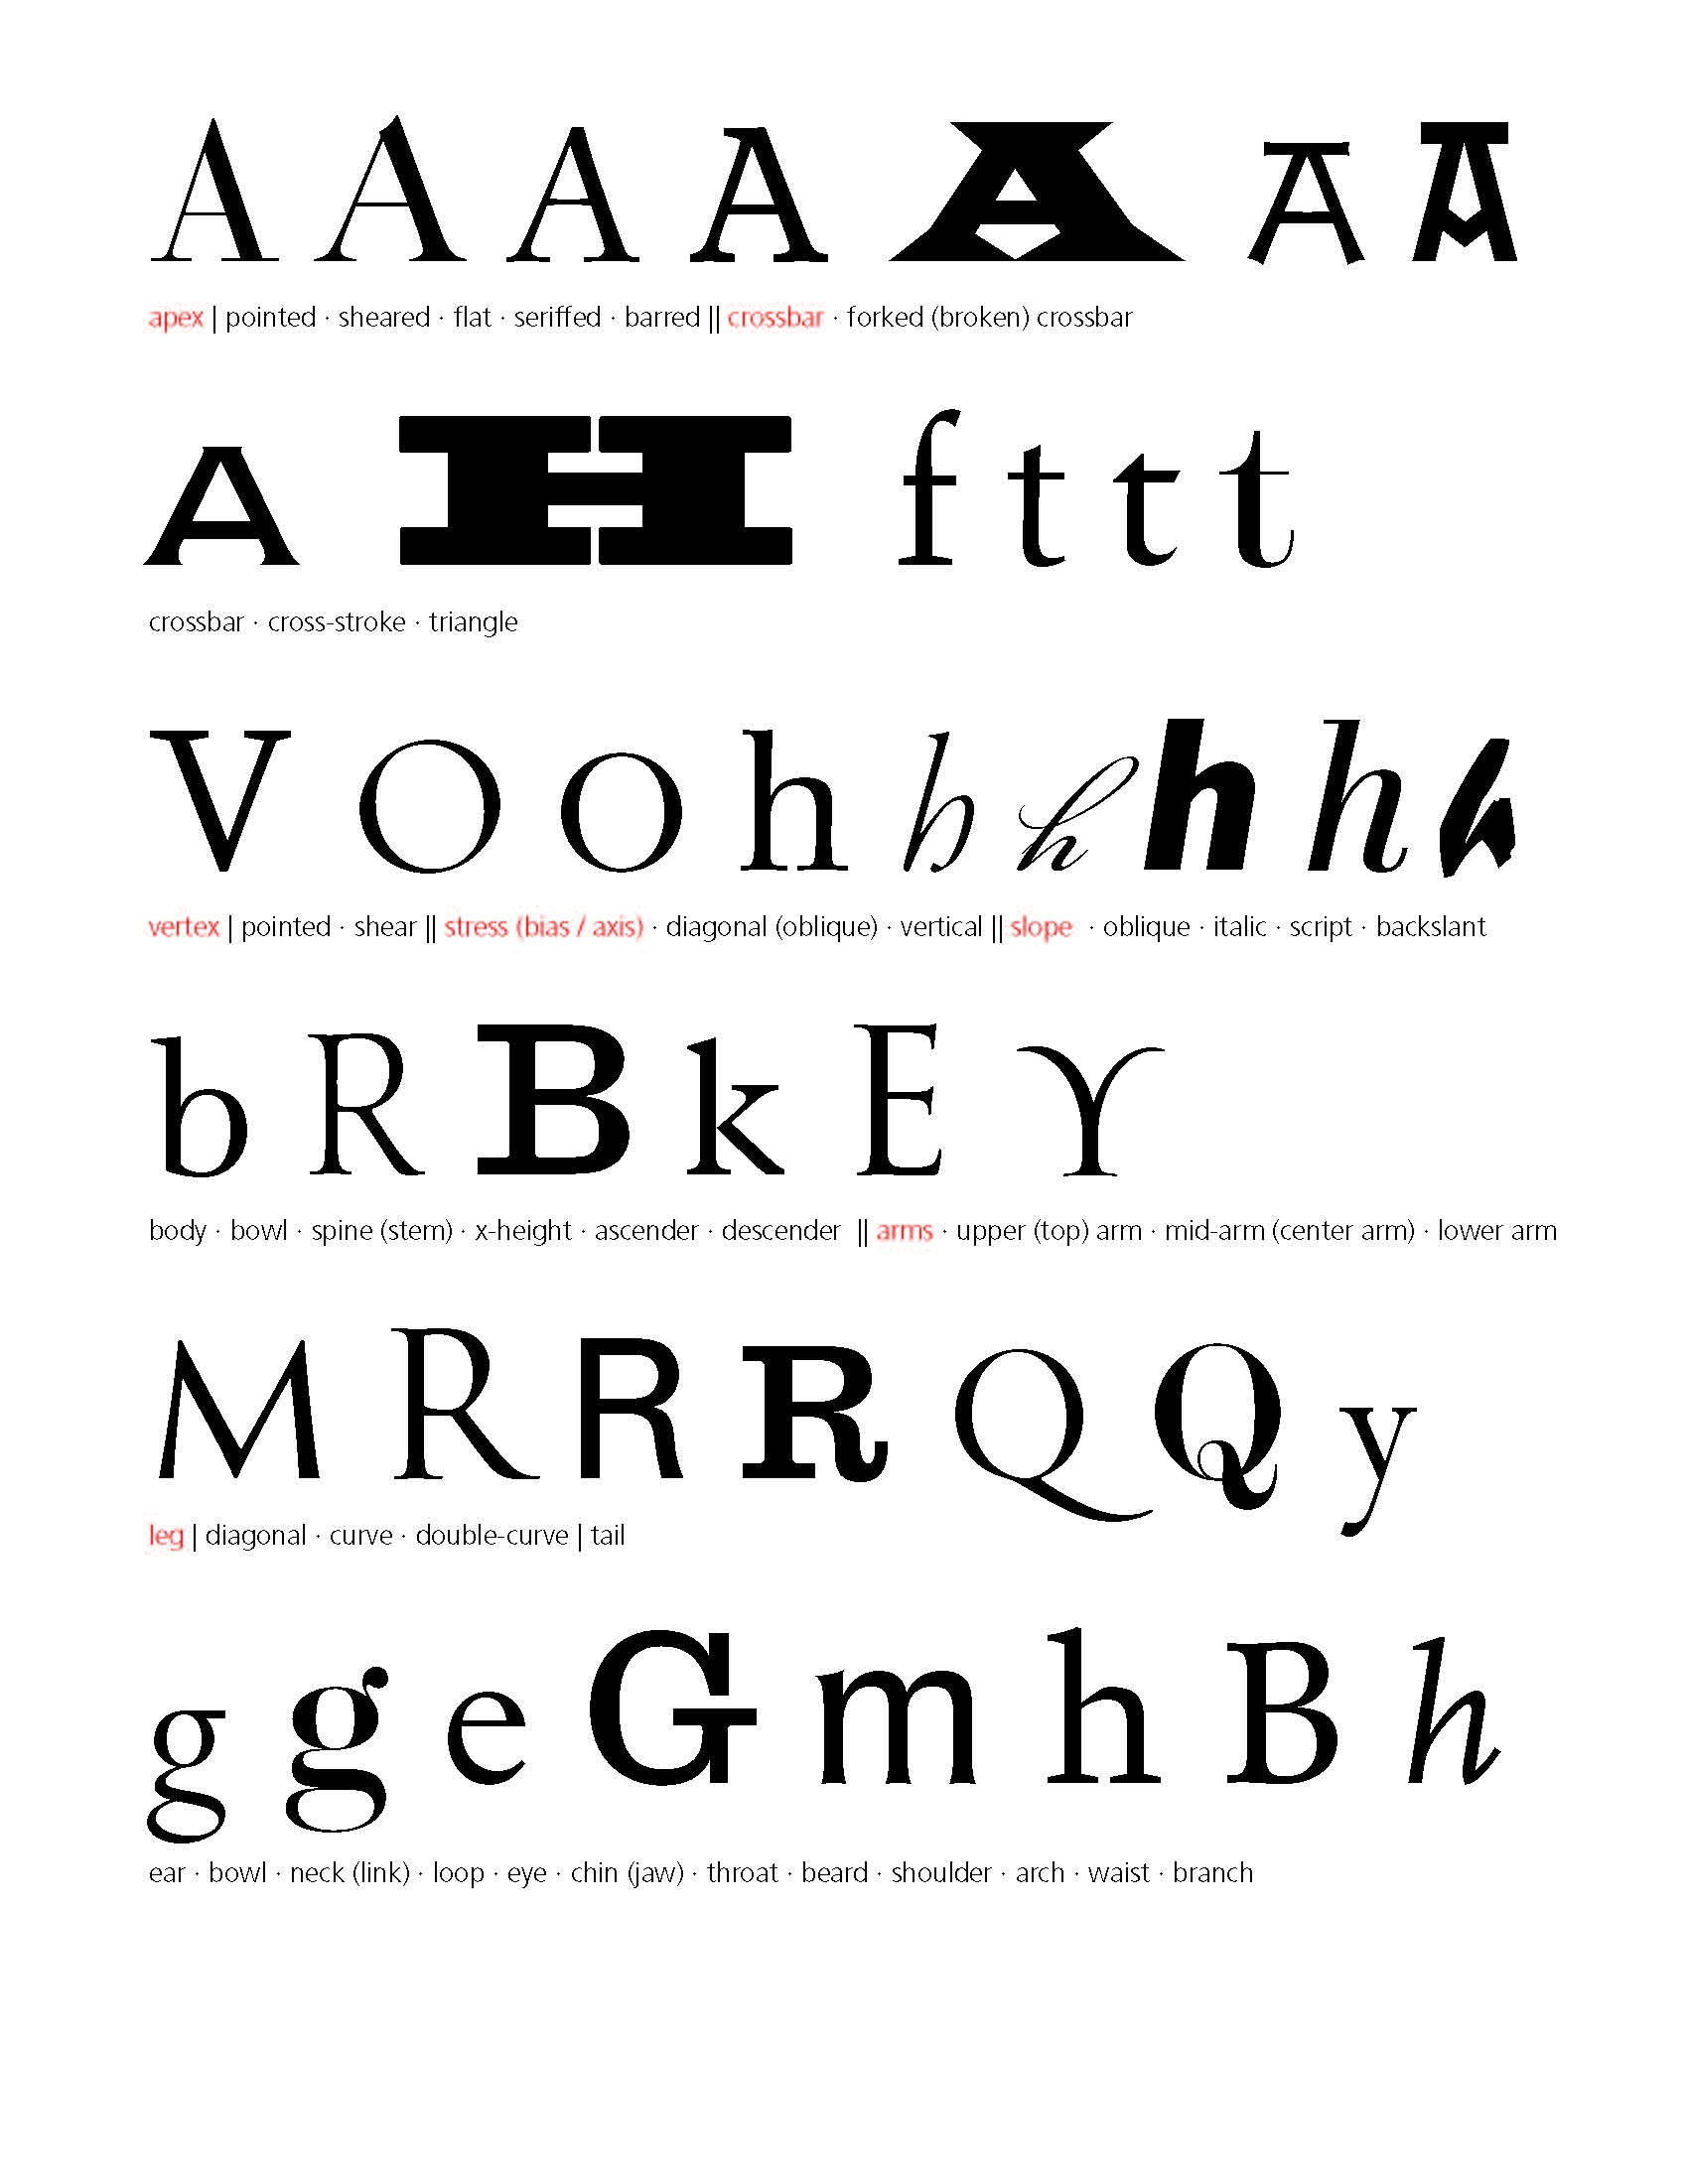 Paul Shaw Letter Design » Thoughts on Letterform Nomenclature